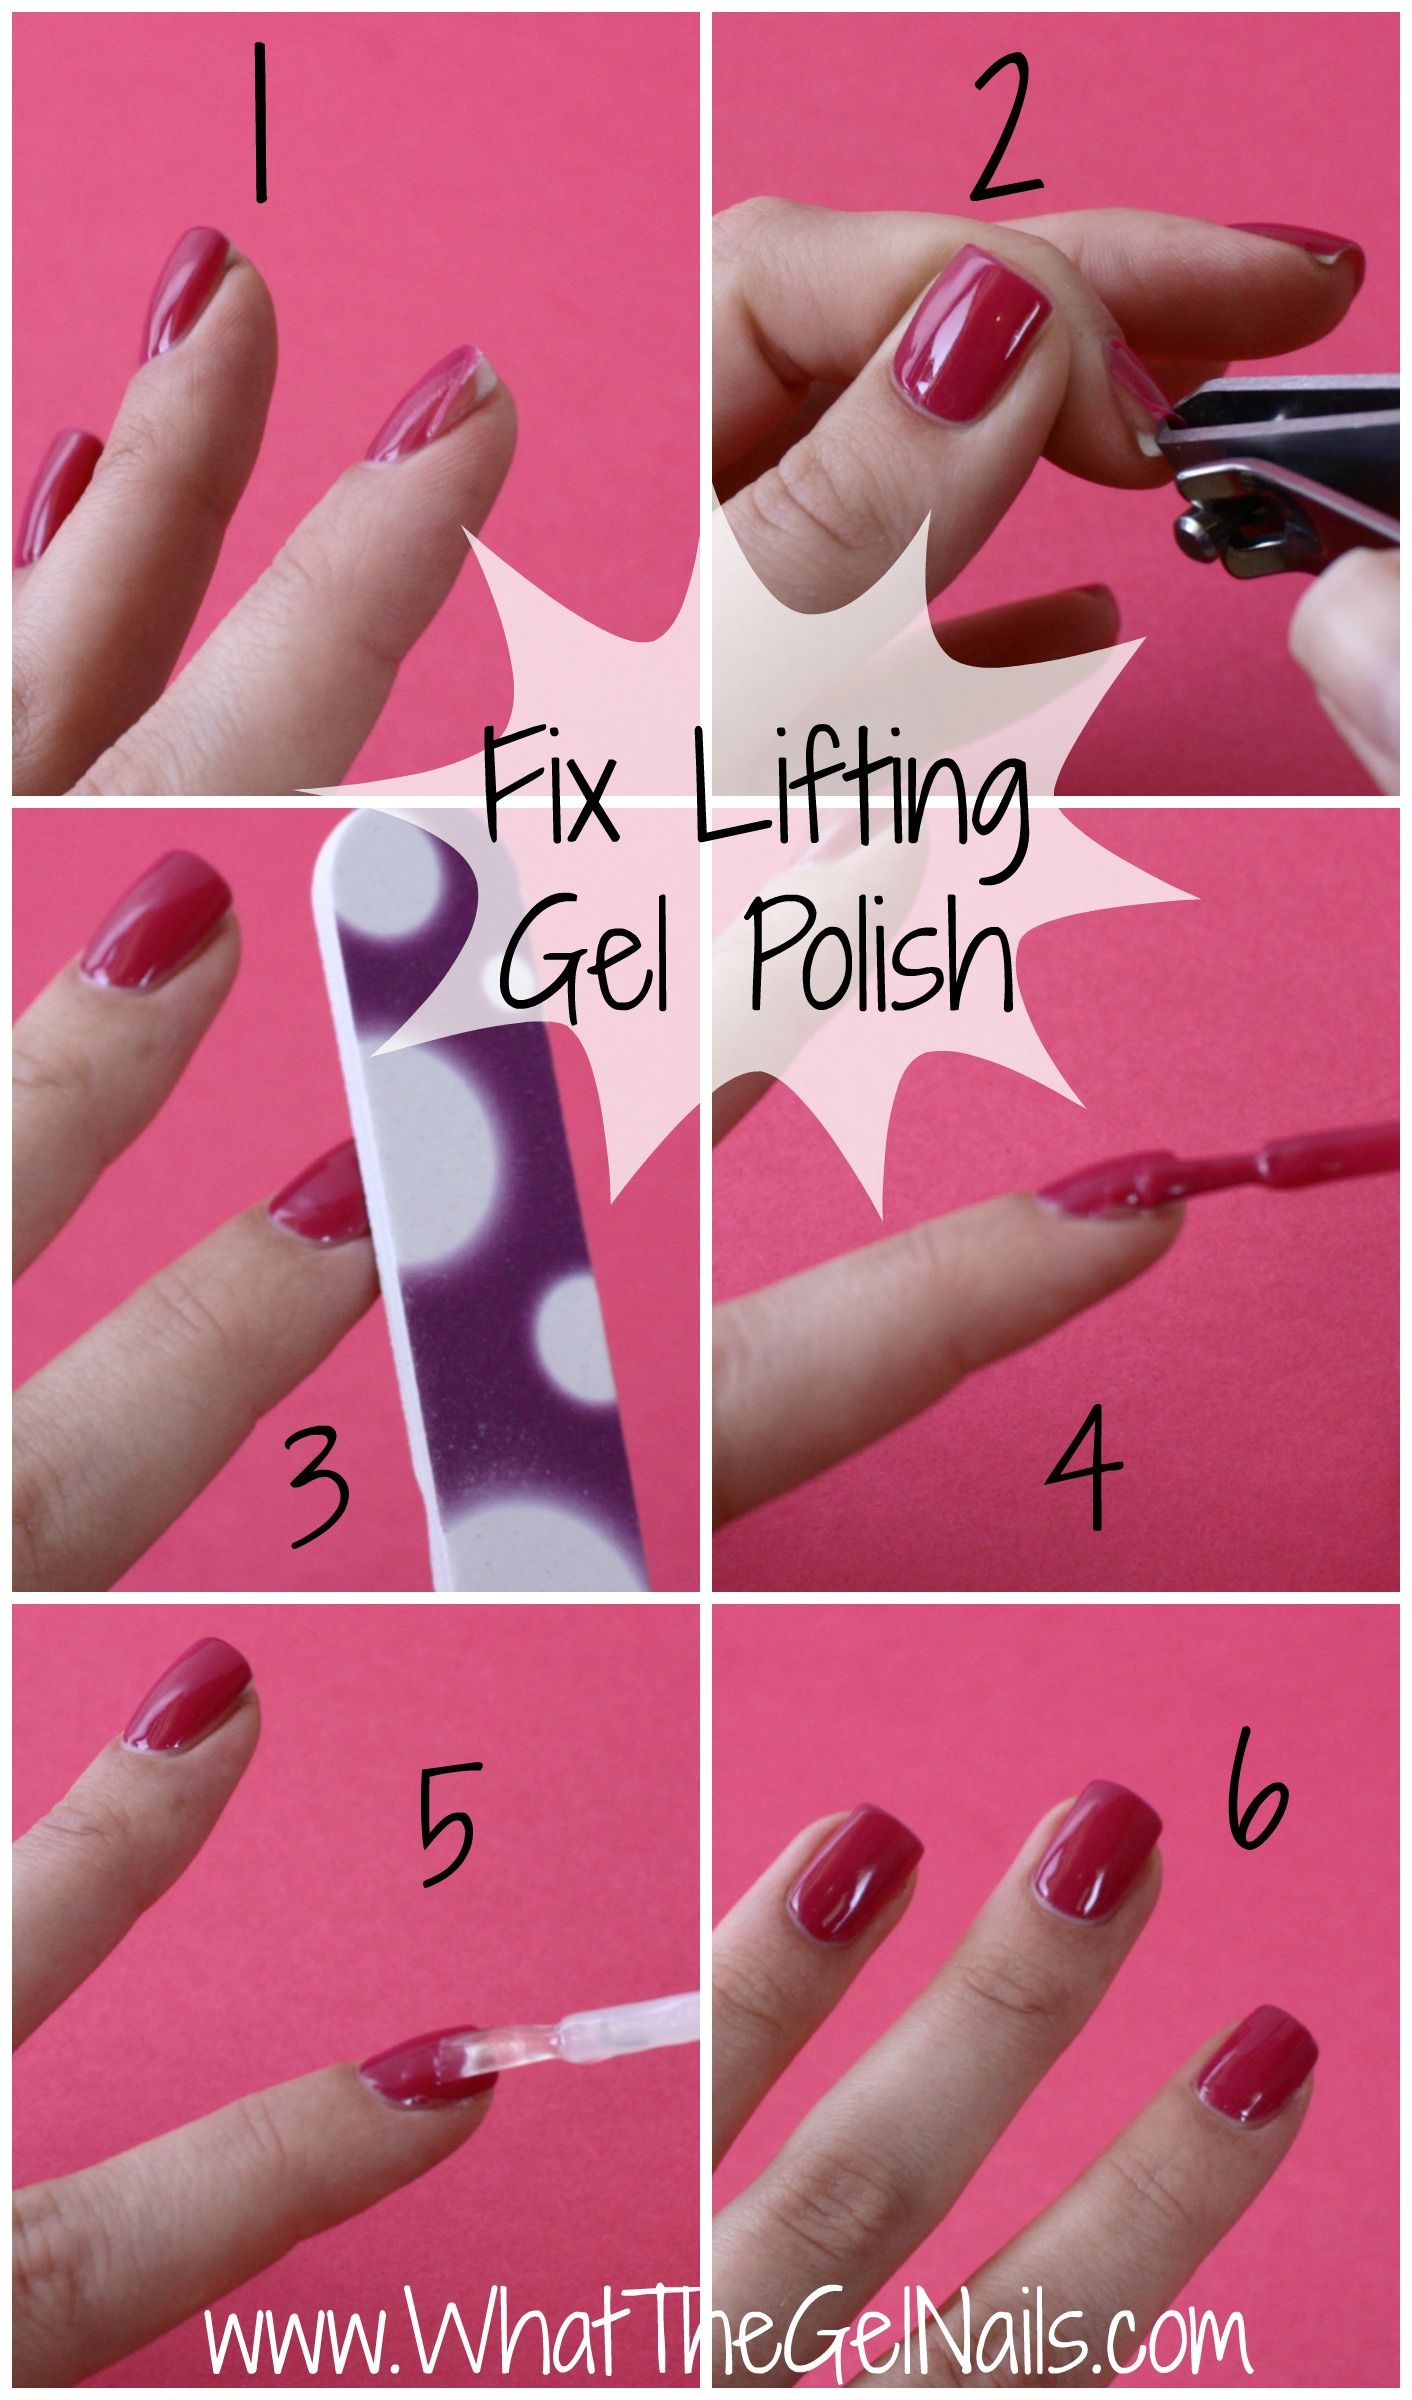 Fix Lifting Gel Polish In Just 5 Steps Plus More Tips And Tricks For